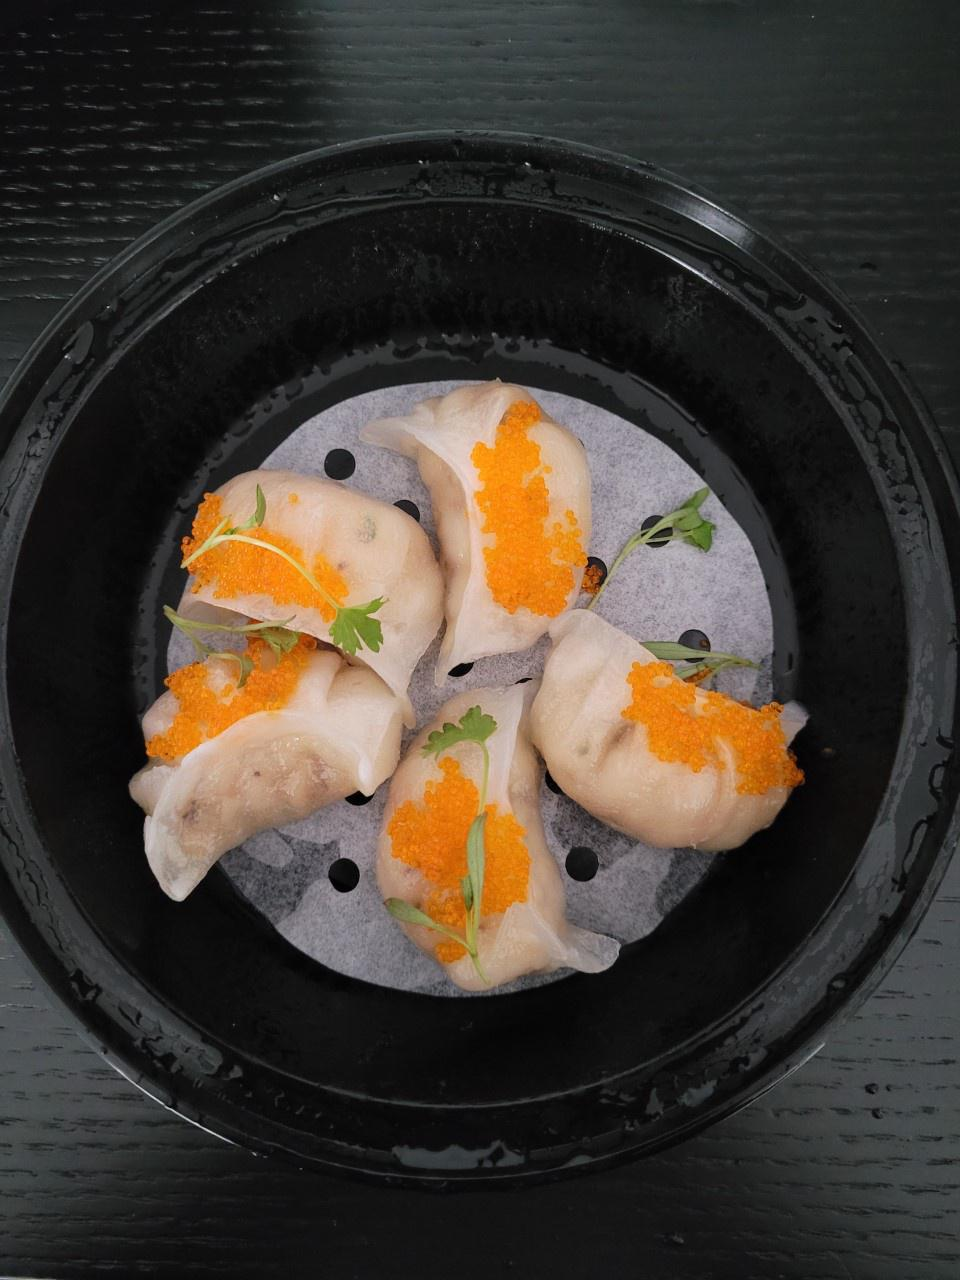 To go container with steamed dumplings with caviar from BoyChoy